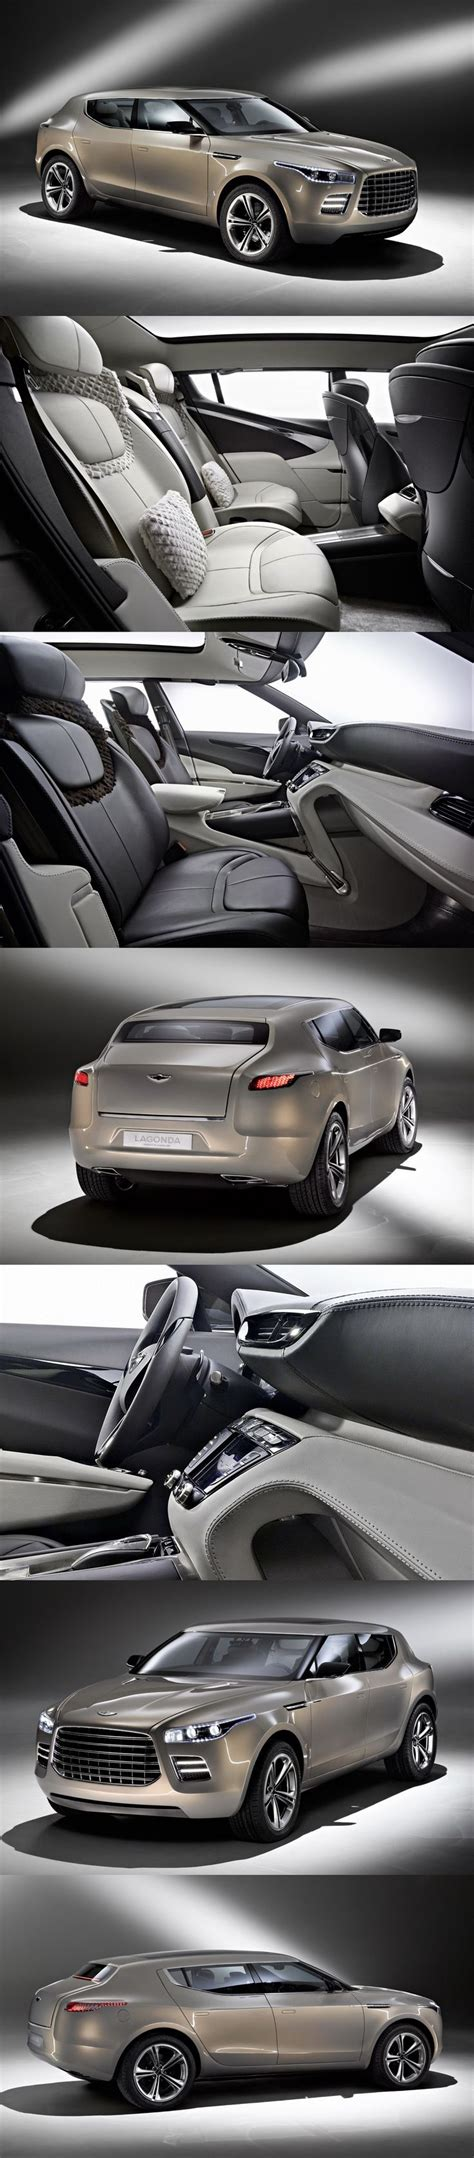 aston martin suv interior 4767 best drive in style images on pinterest cars dream